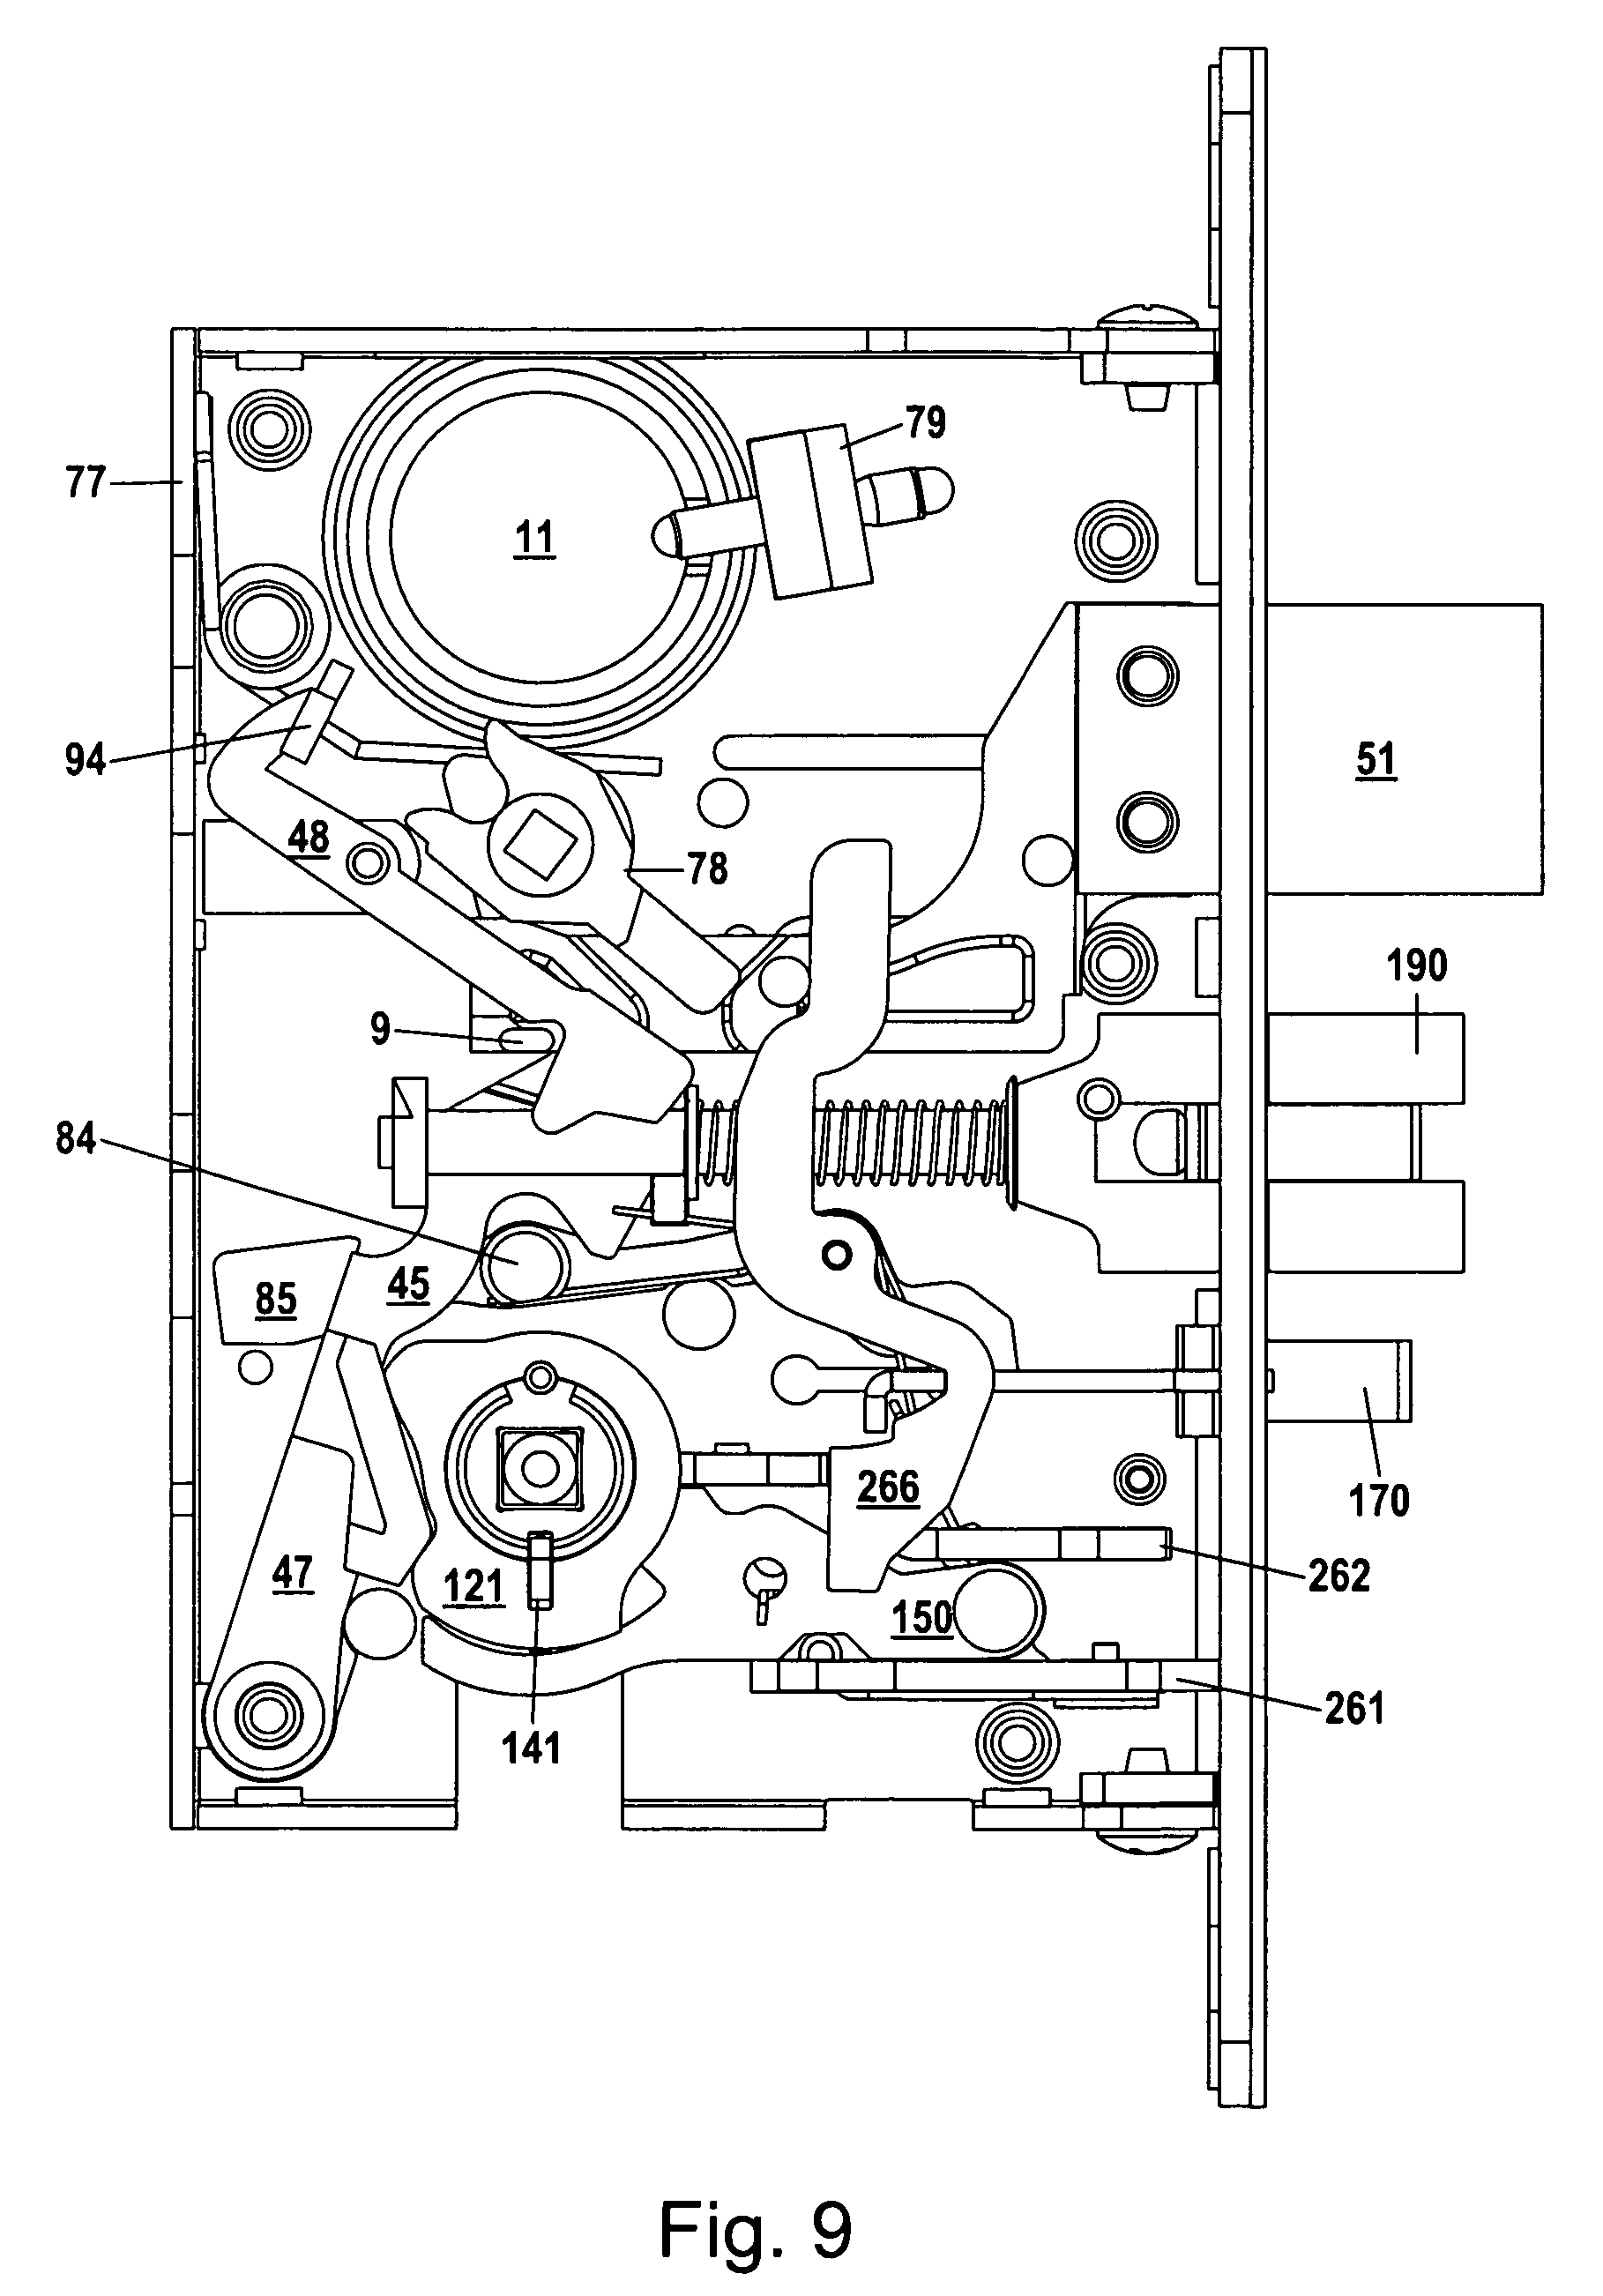 mortise lock parts diagram fast xfi 2 0 wiring patent us8292336 assembly google patents